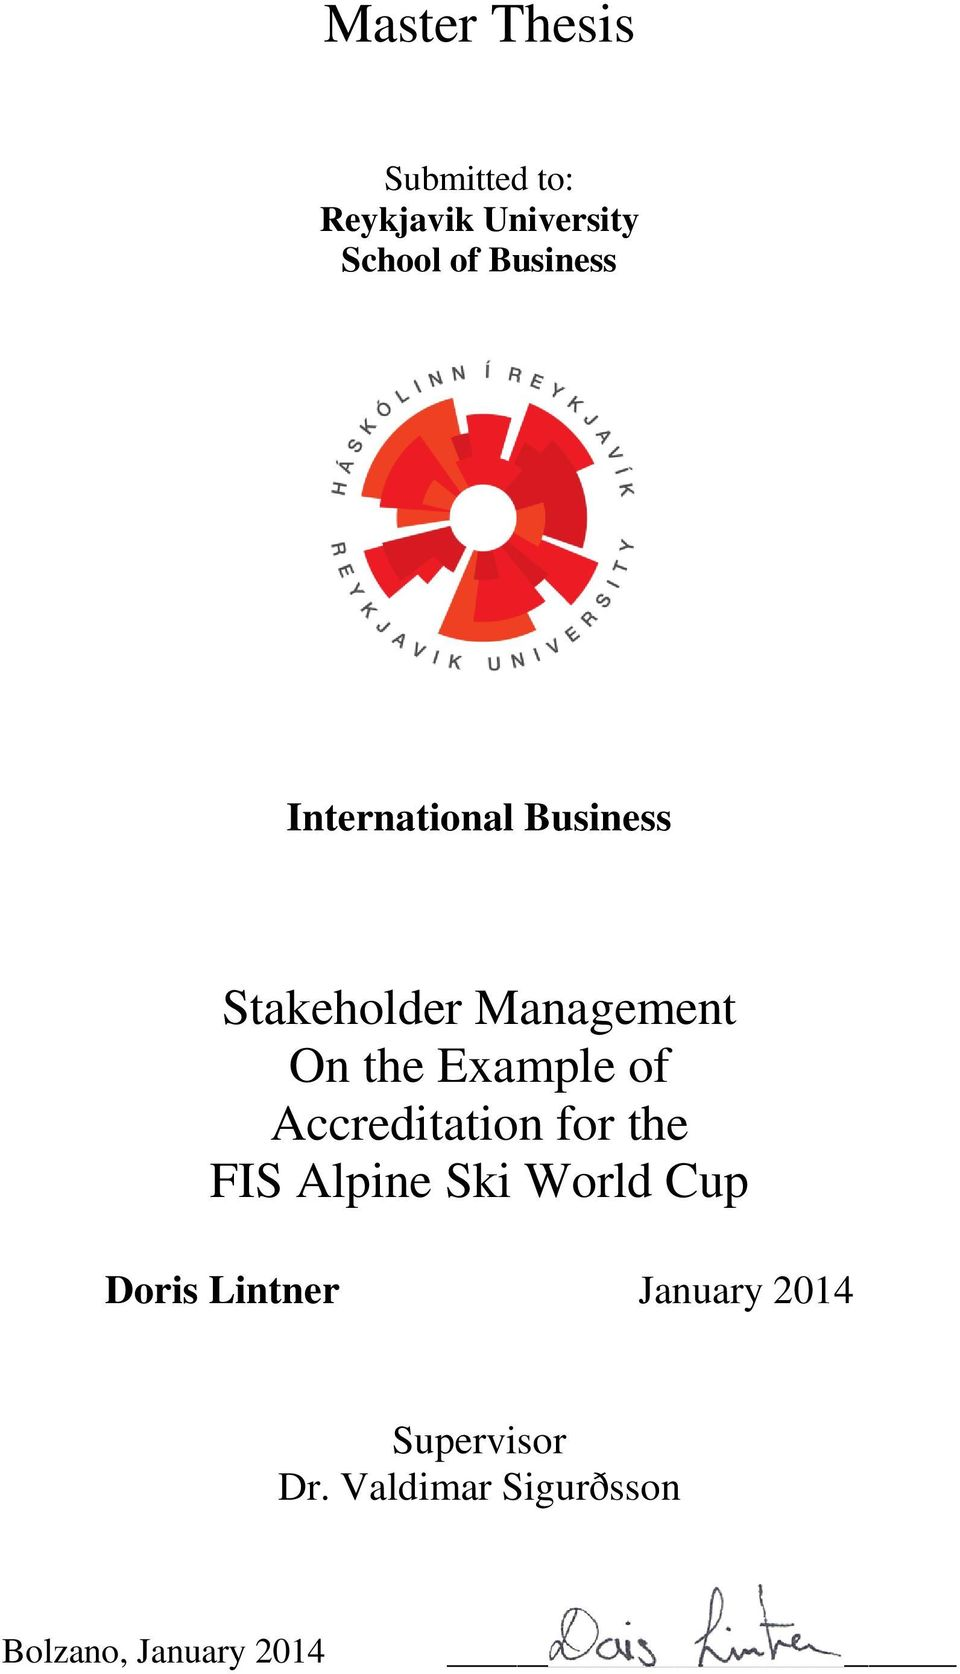 Example of Accreditation for the FIS Alpine Ski World Cup Doris